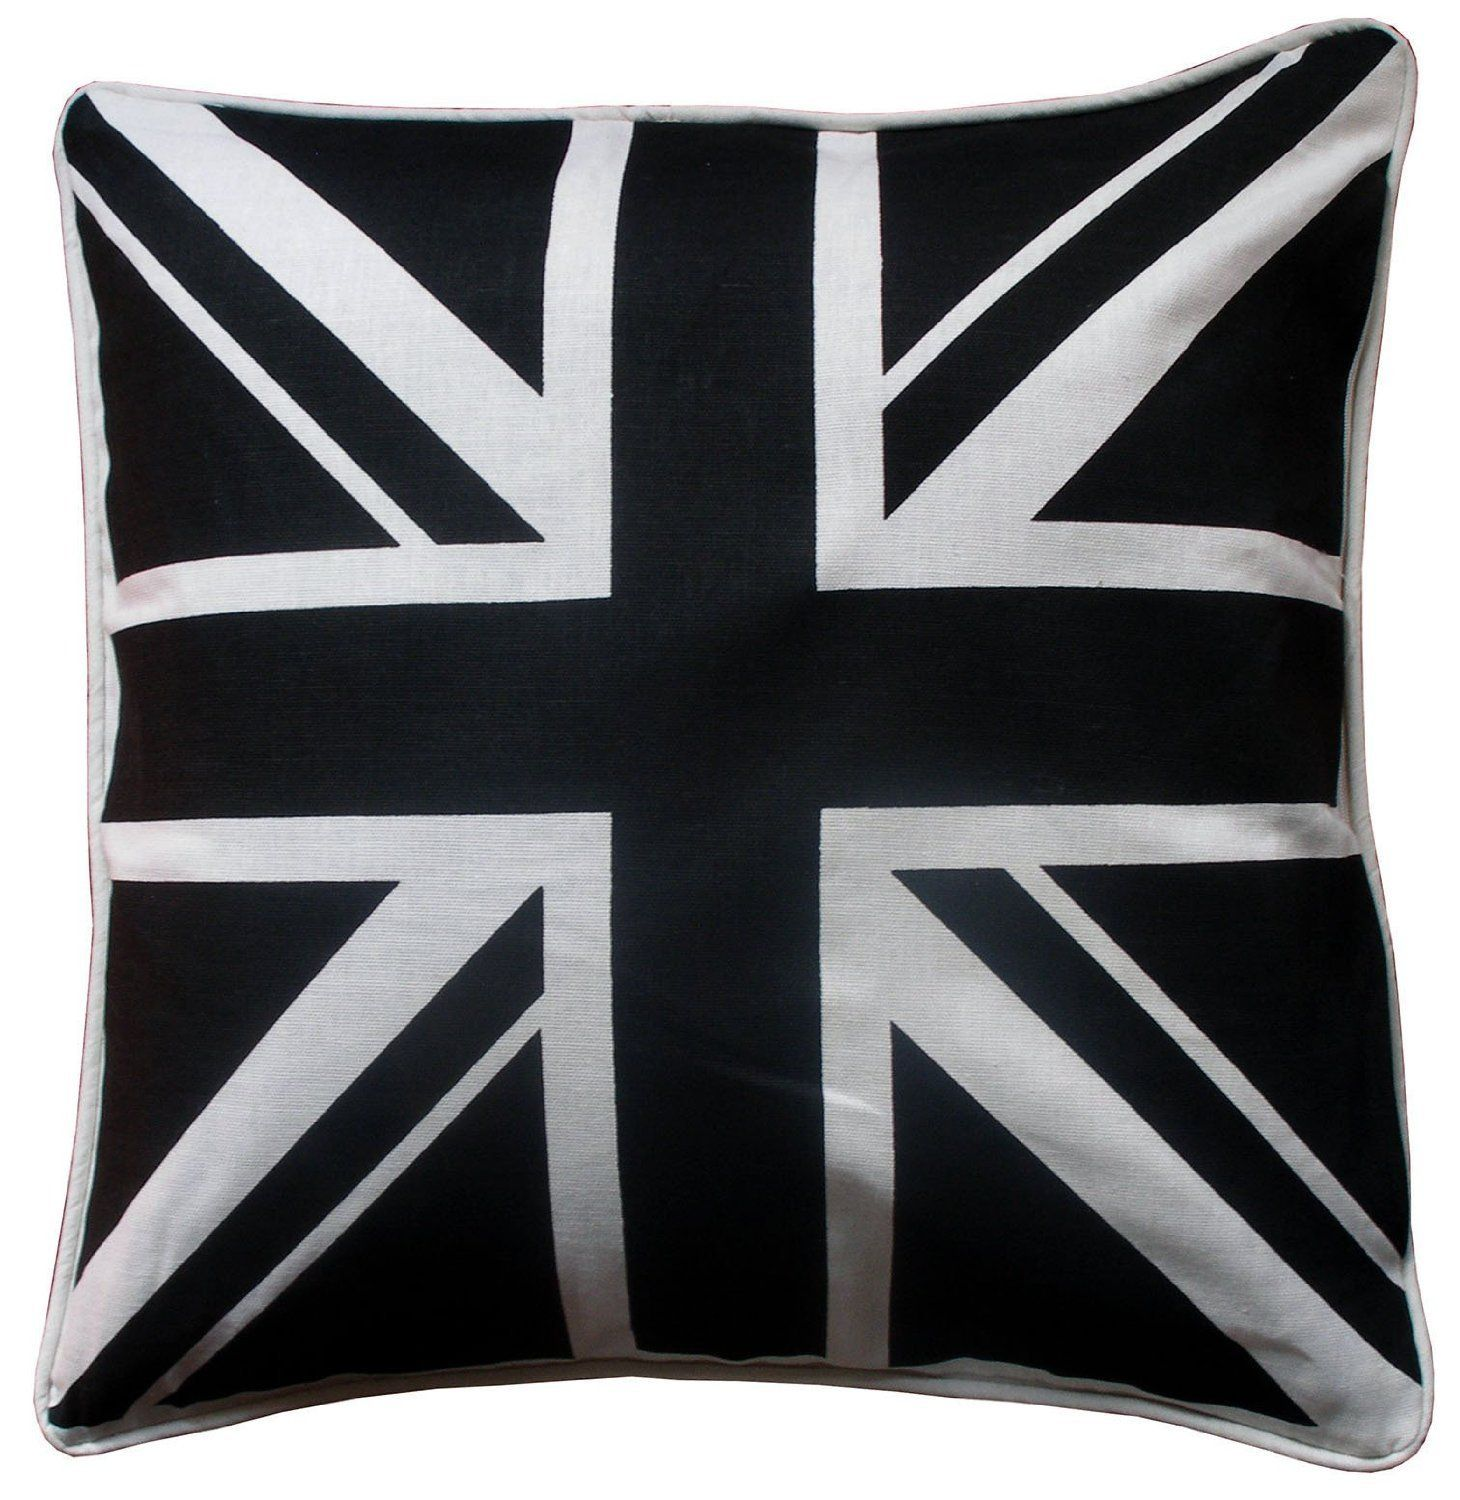 Union Jack Tapestry British United Kingdom Flag Cushion Cover Color Black And White Size 18